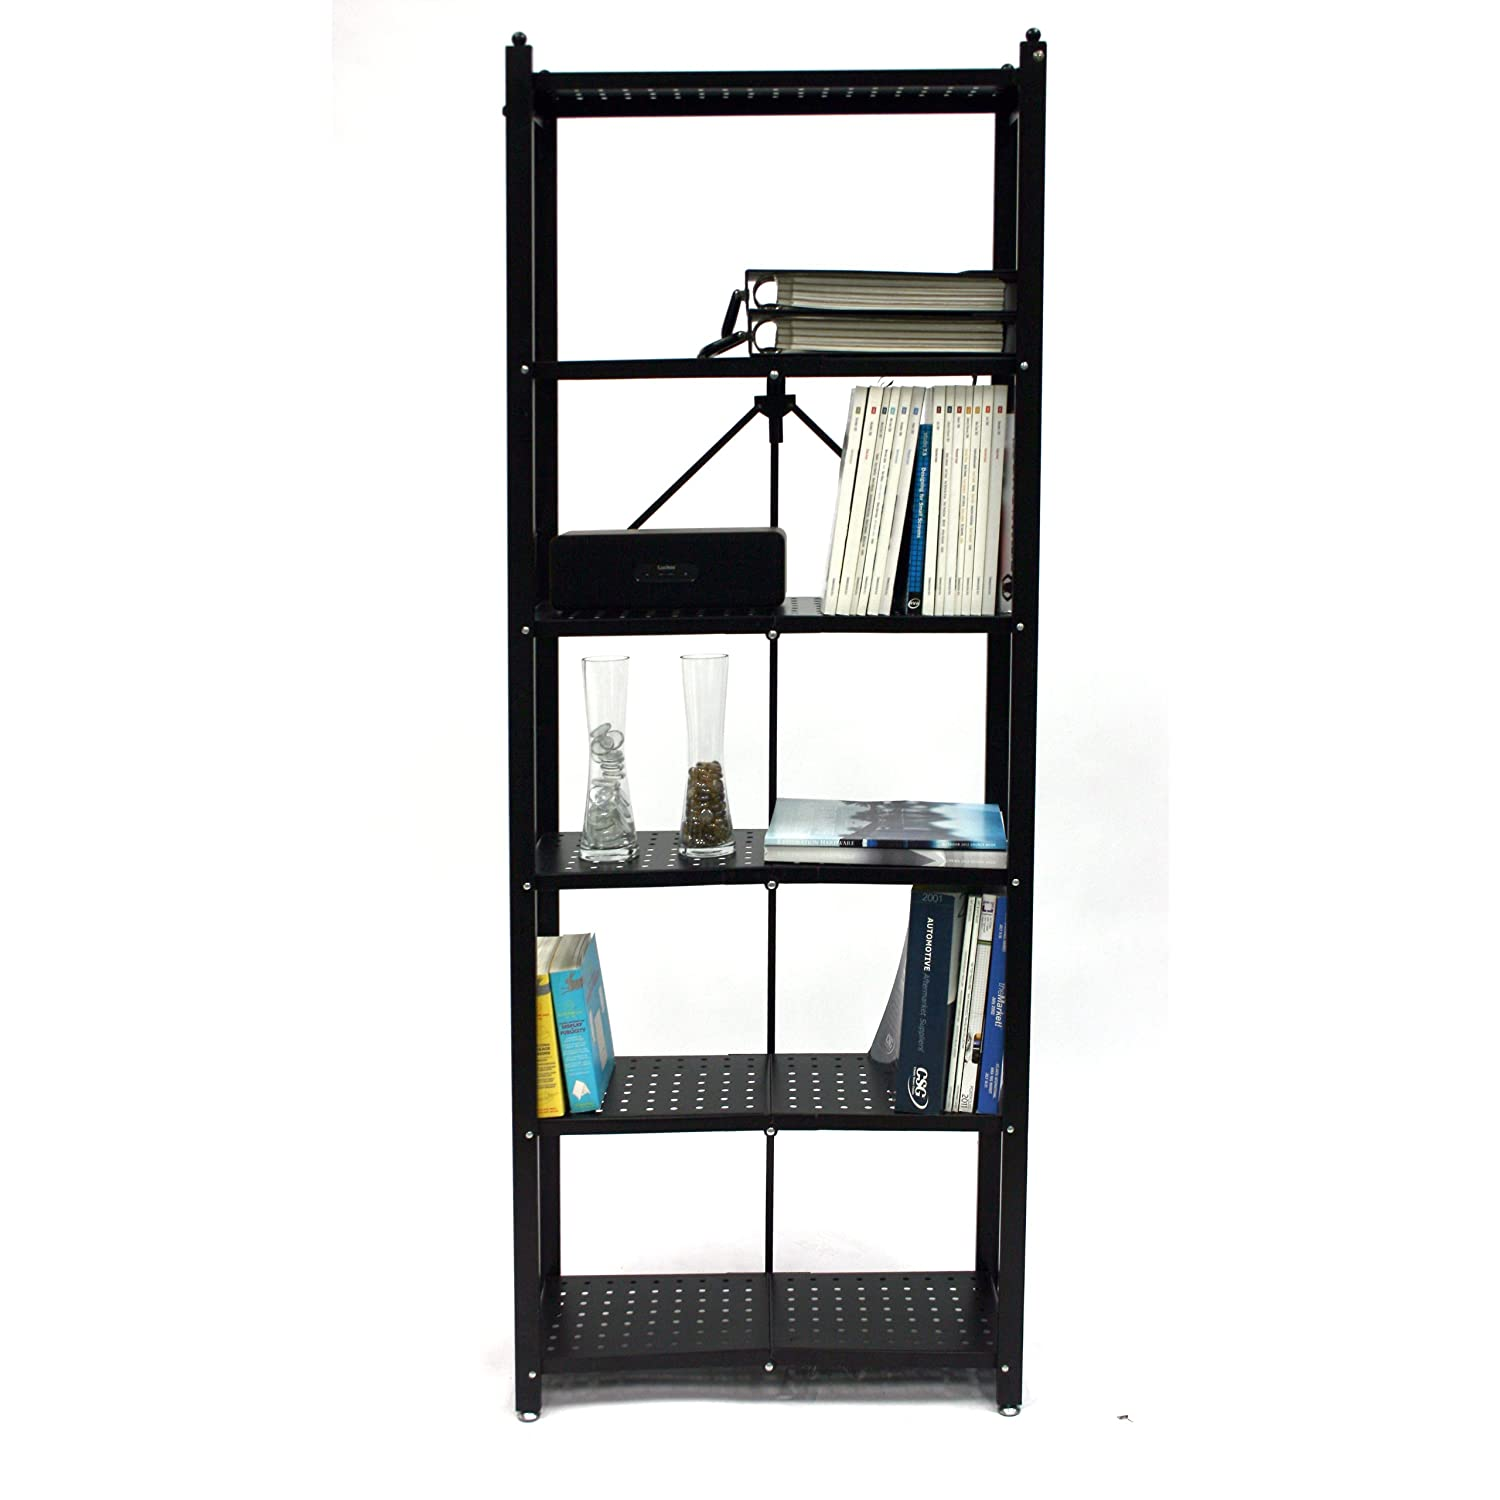 origami rb-01 6-tier bookshelf